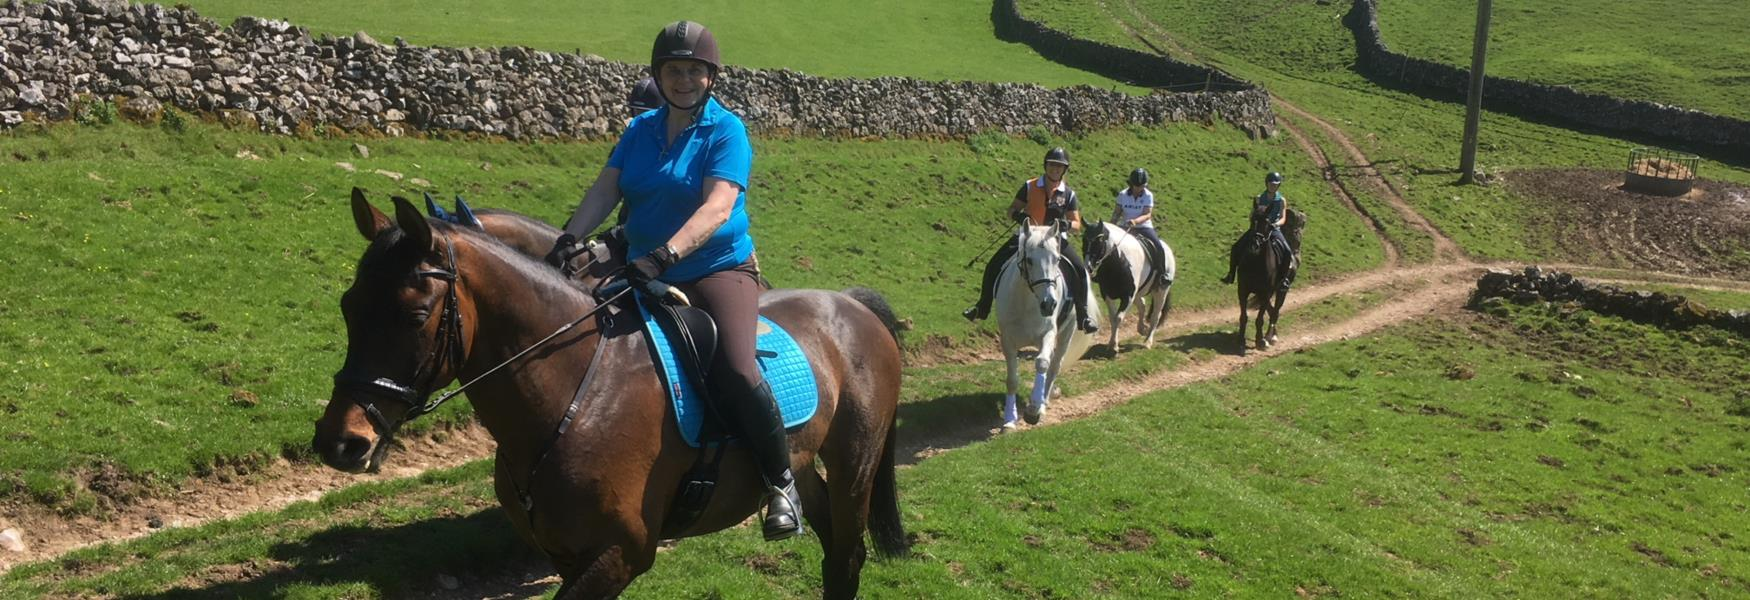 Horse Riding in the Peak District & Derbyshire - Official Guide